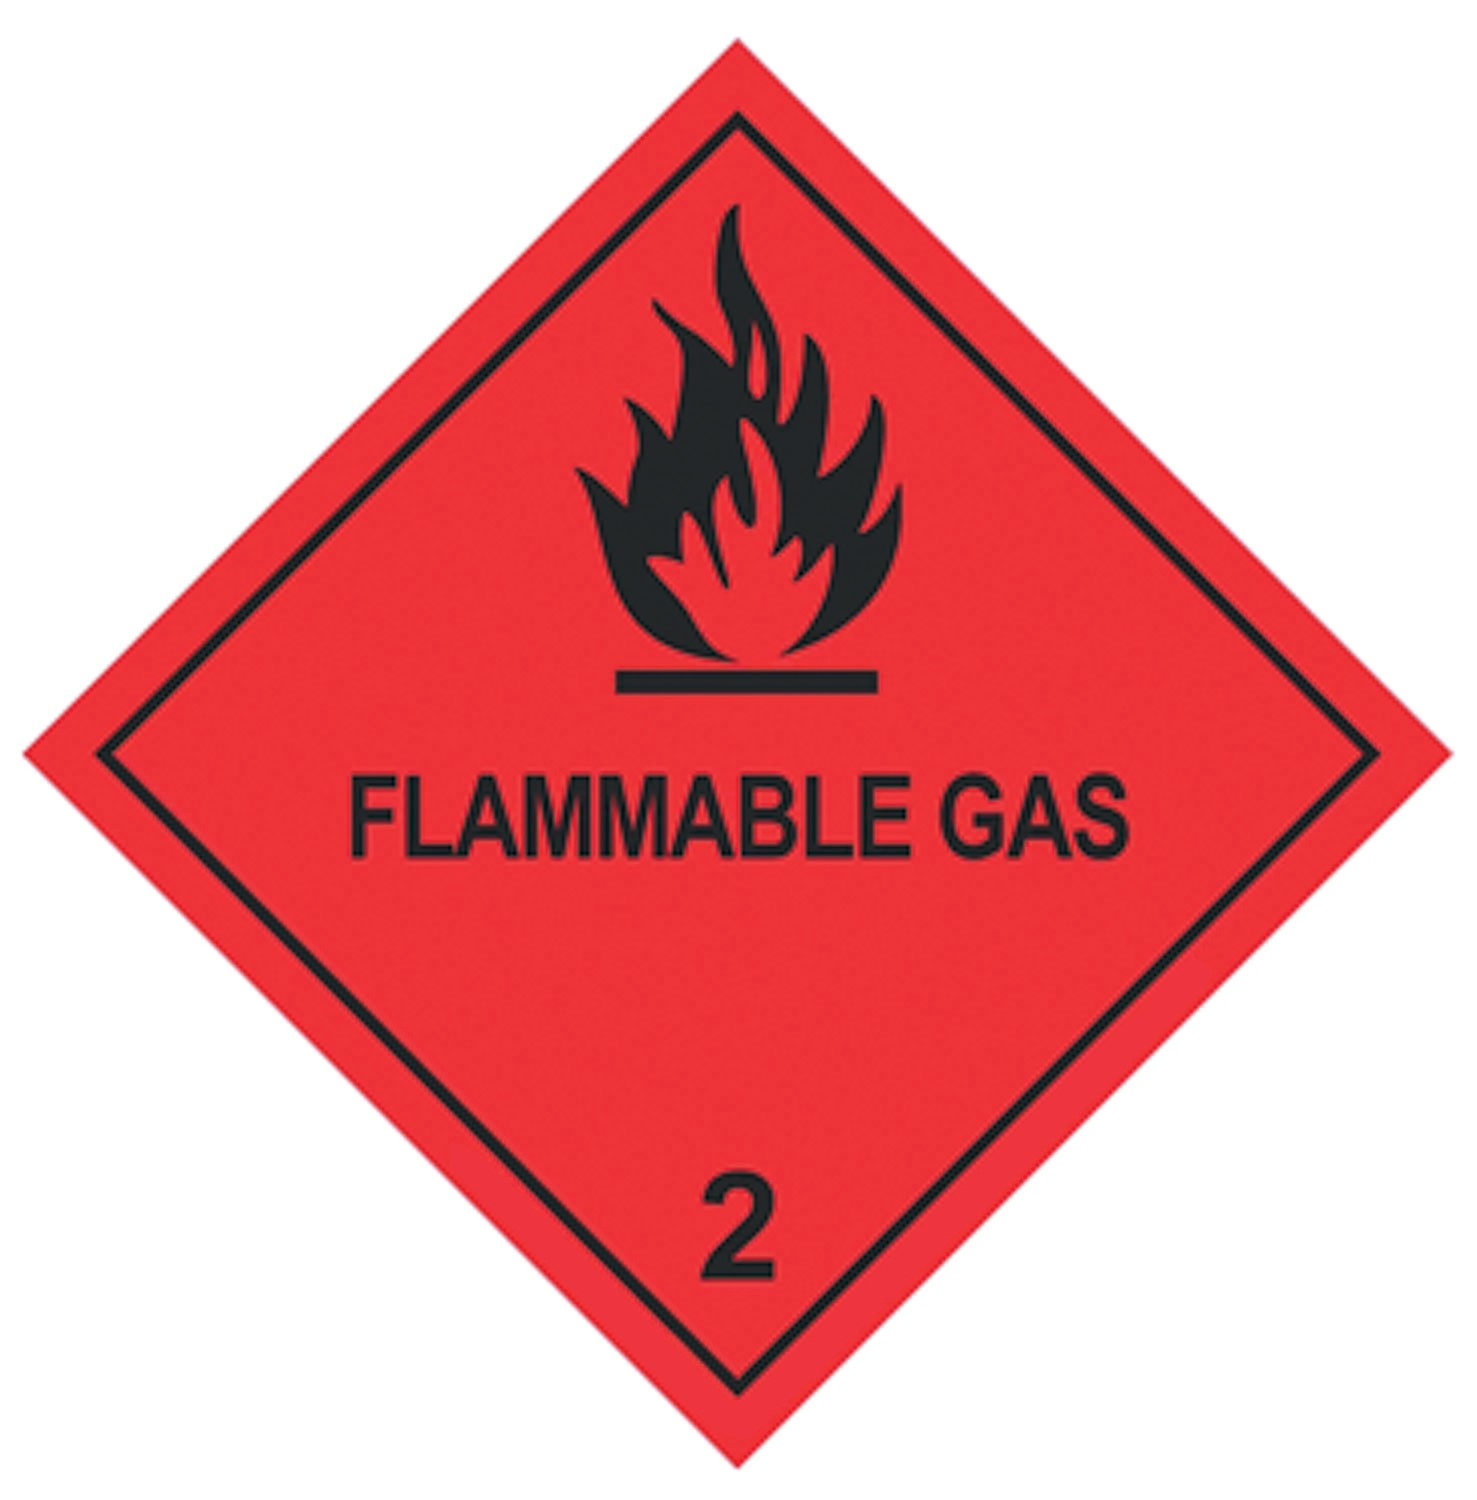 100 X 100MM FLAMMABLE GAS NO 2 LABELS - 250 labels per roll